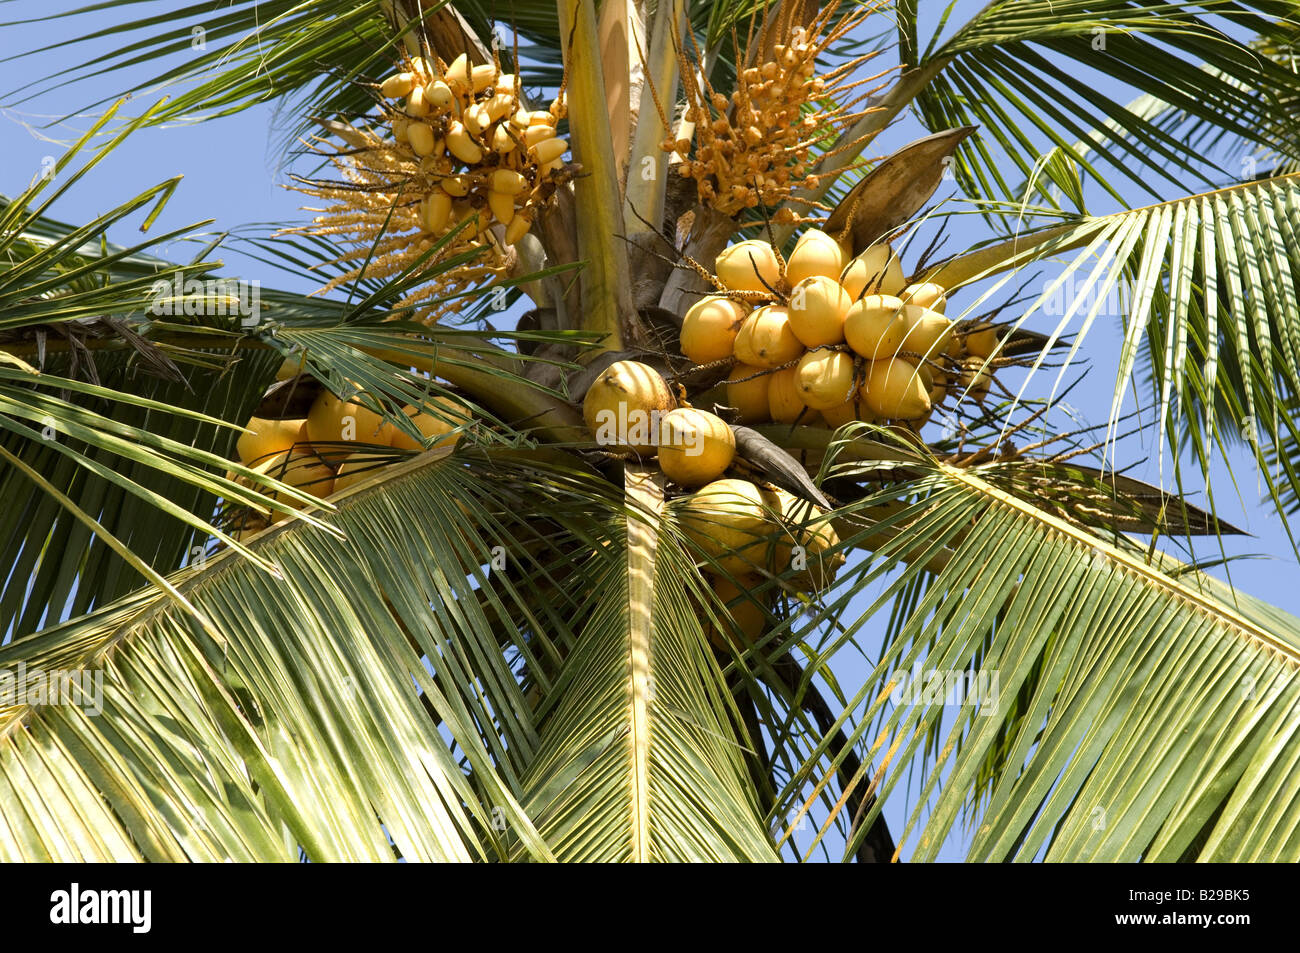 King Coconut palm Sri Lanka Date 20 04 2008 Ref ZB648 115261 0059 COMPULSORY CREDIT World Pictures Photoshot - Stock Image